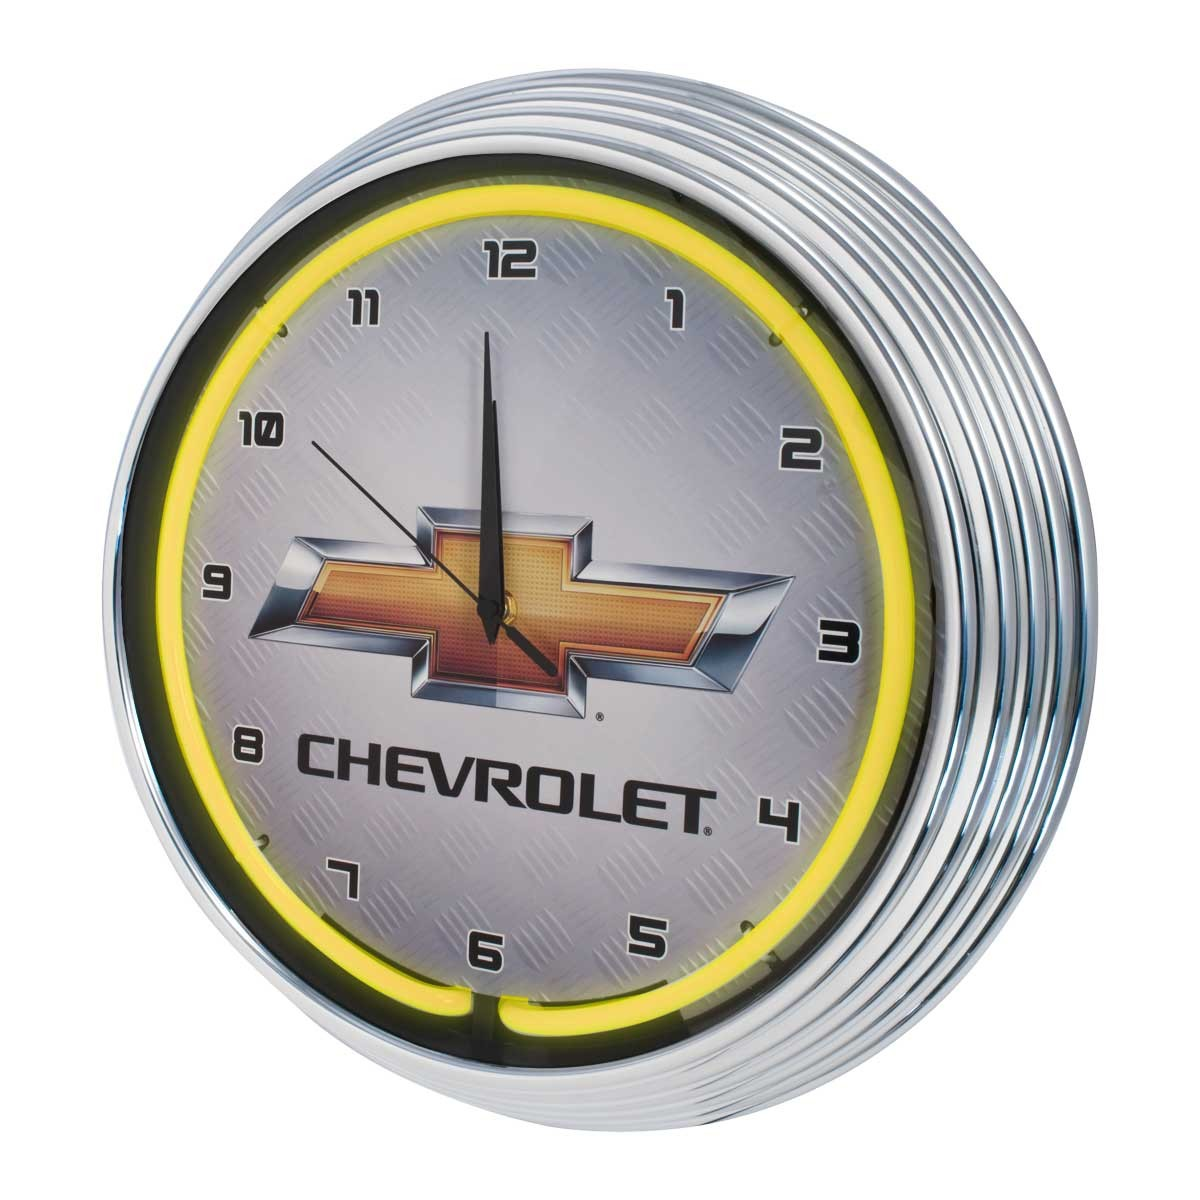 Chevrolet Bowtie Illuminated Light Up Neon Clock Yellow w/ Chrome Trim